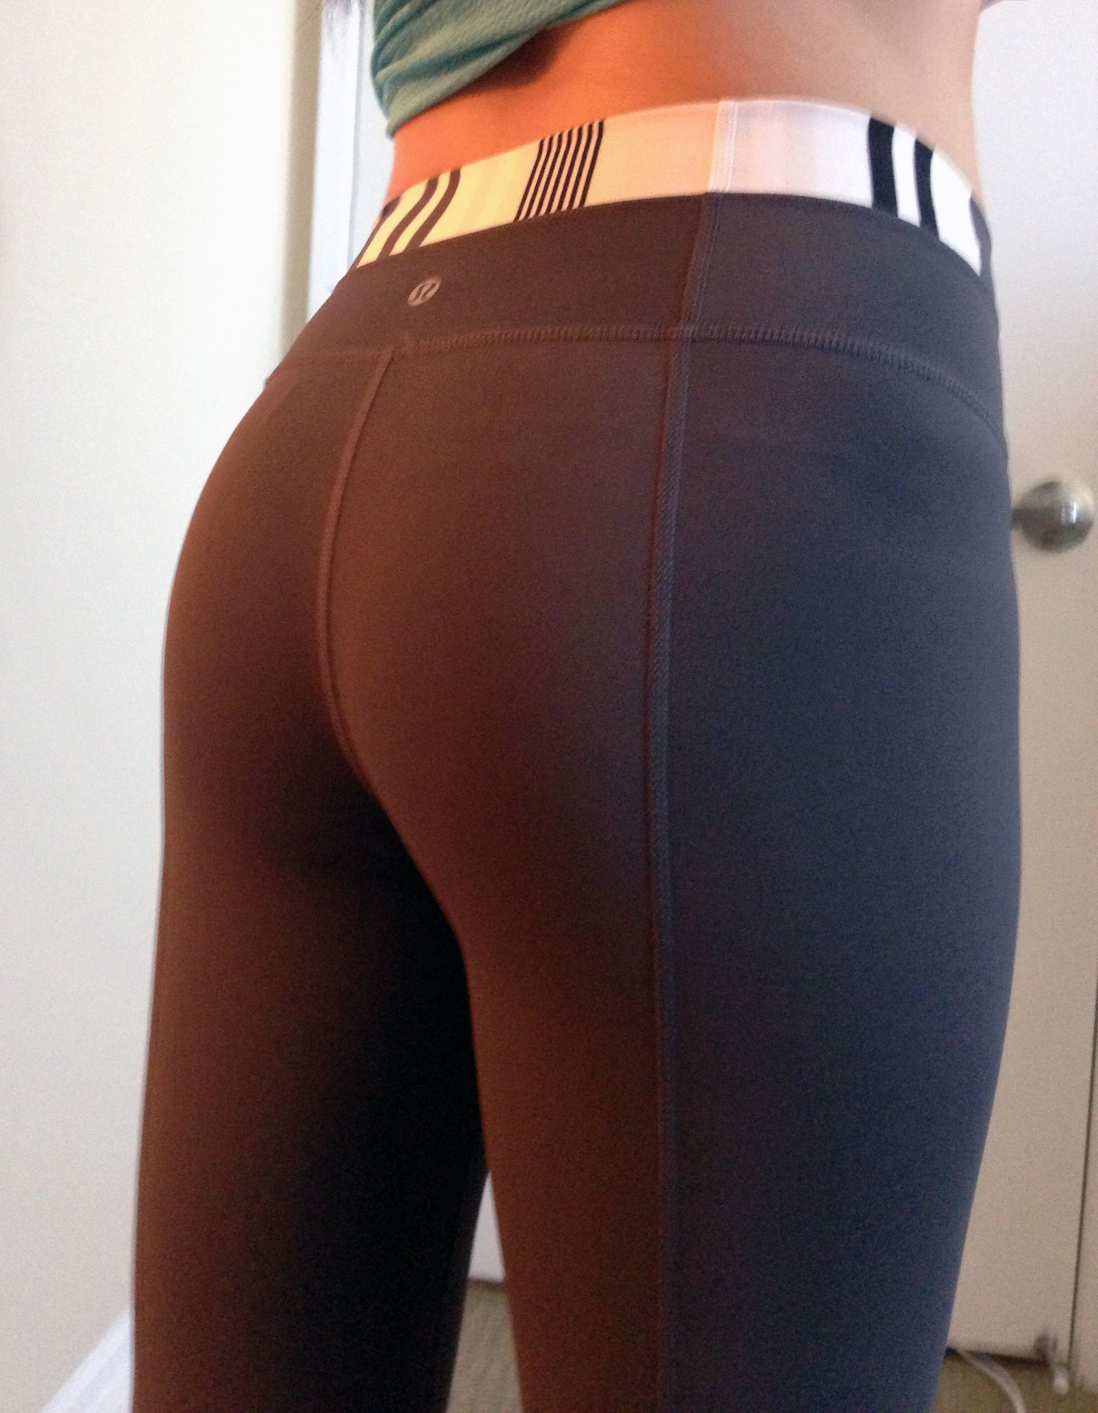 yoga pants yahoo answers photo - 1